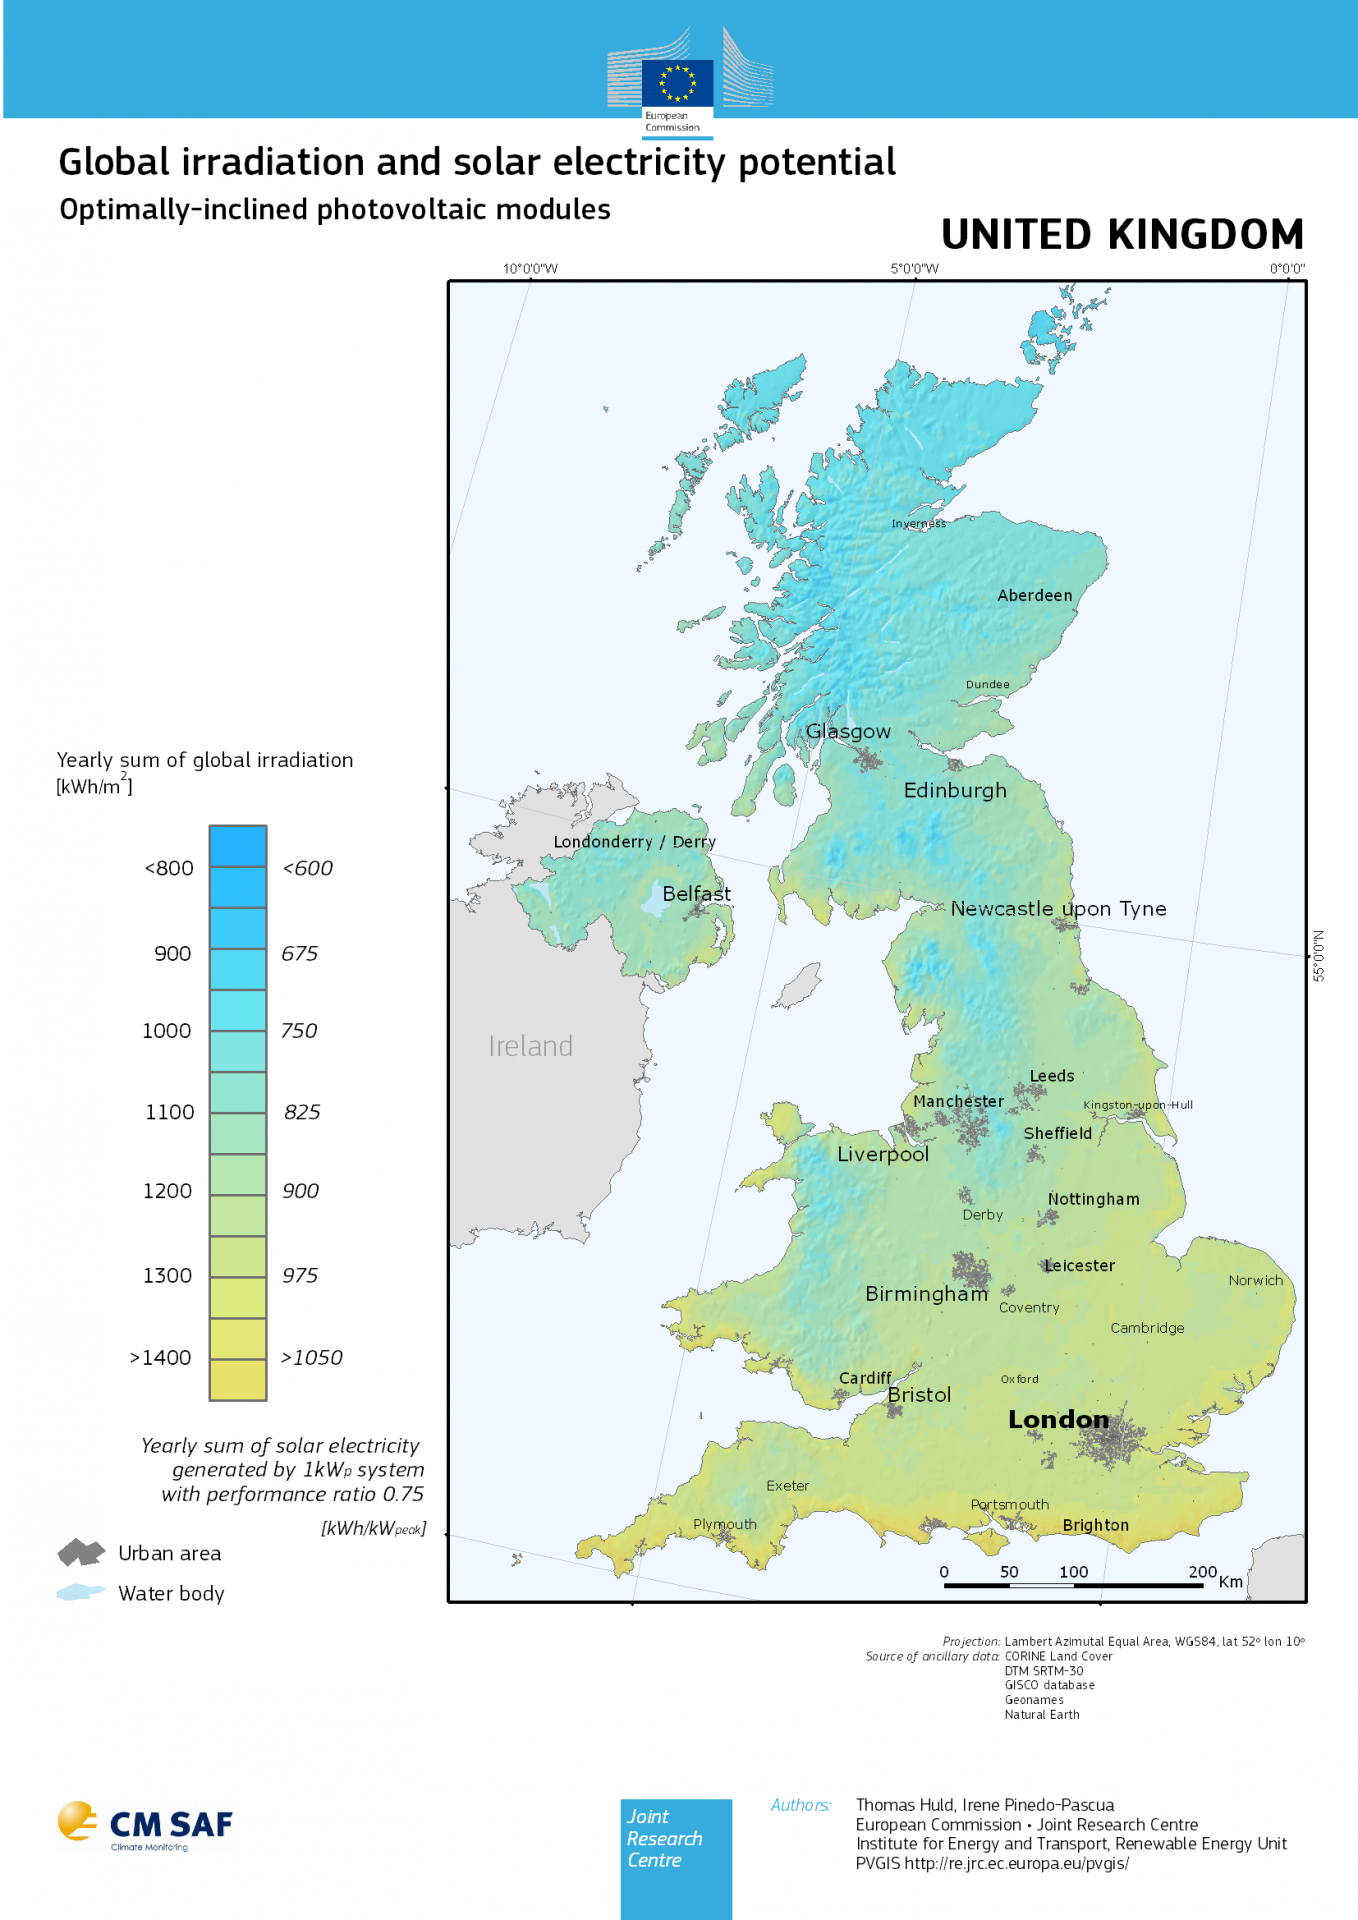 A map produced by the PV-GIS service showing the annual solar irradiance for an optimally inclined solar photovoltaic panel in locations throughout the United Kingdom.